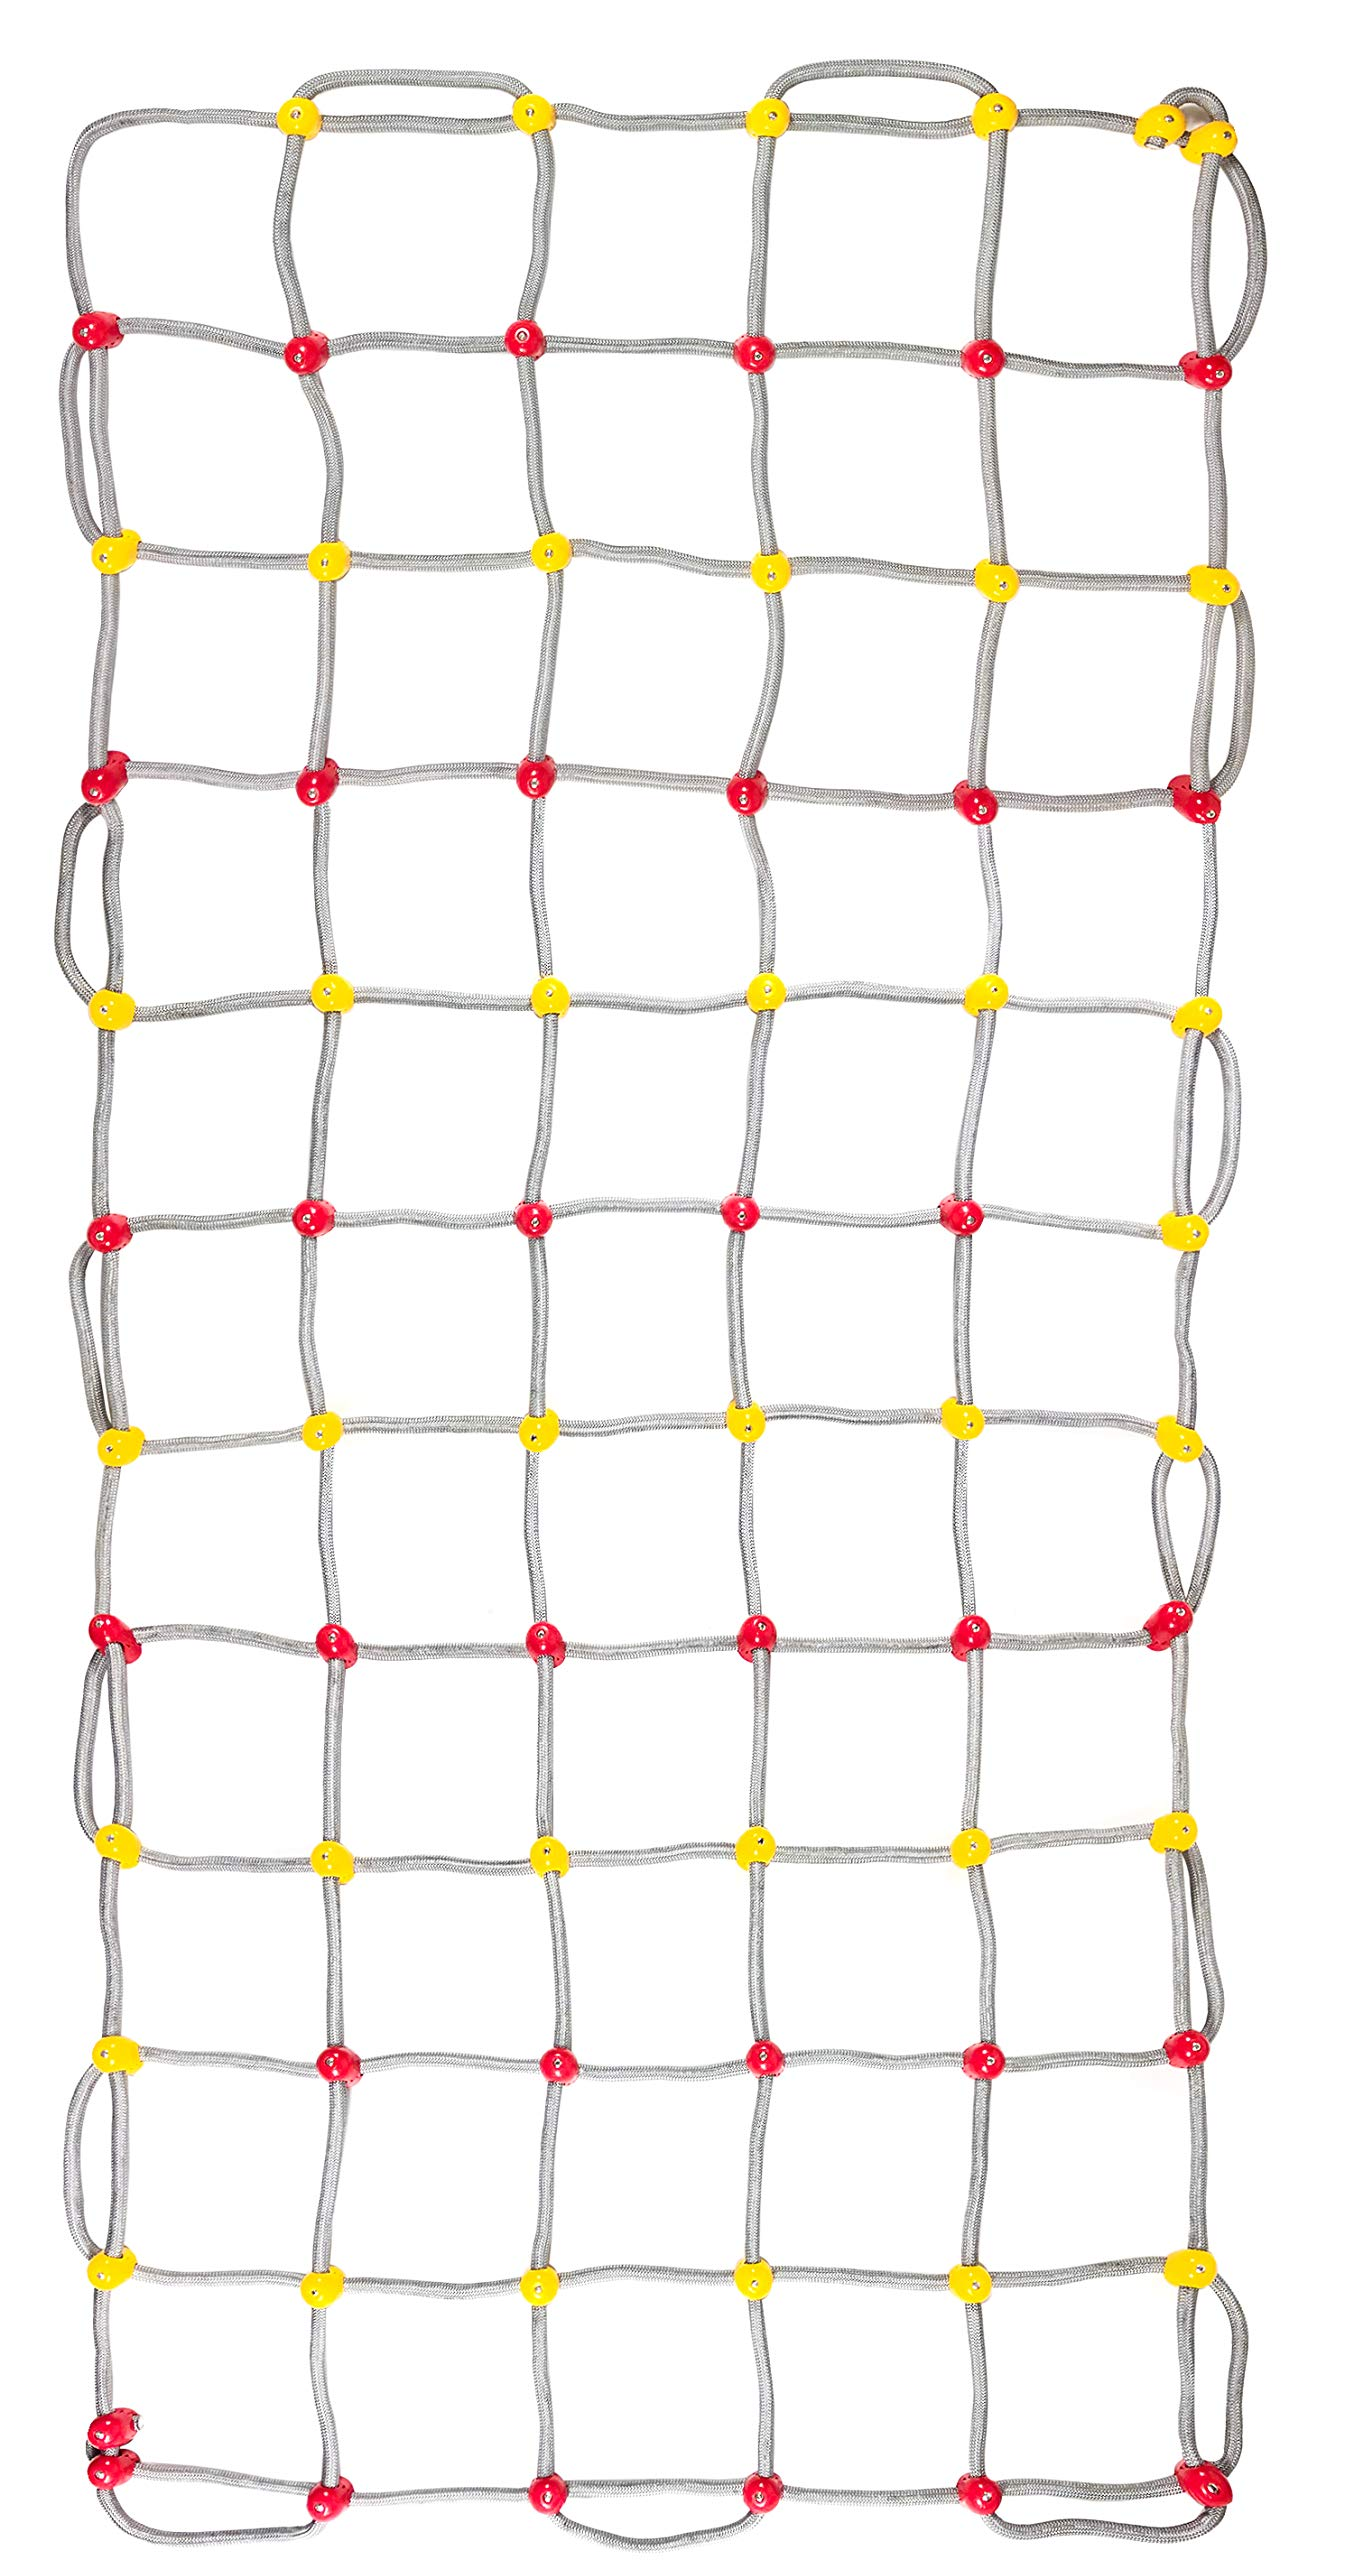 Aoneky 40'' x 86'' Climbing Cargo Net, Rope Climbing Toy for Kids Boys Ages 6 Year Old and up - 15mm Cord